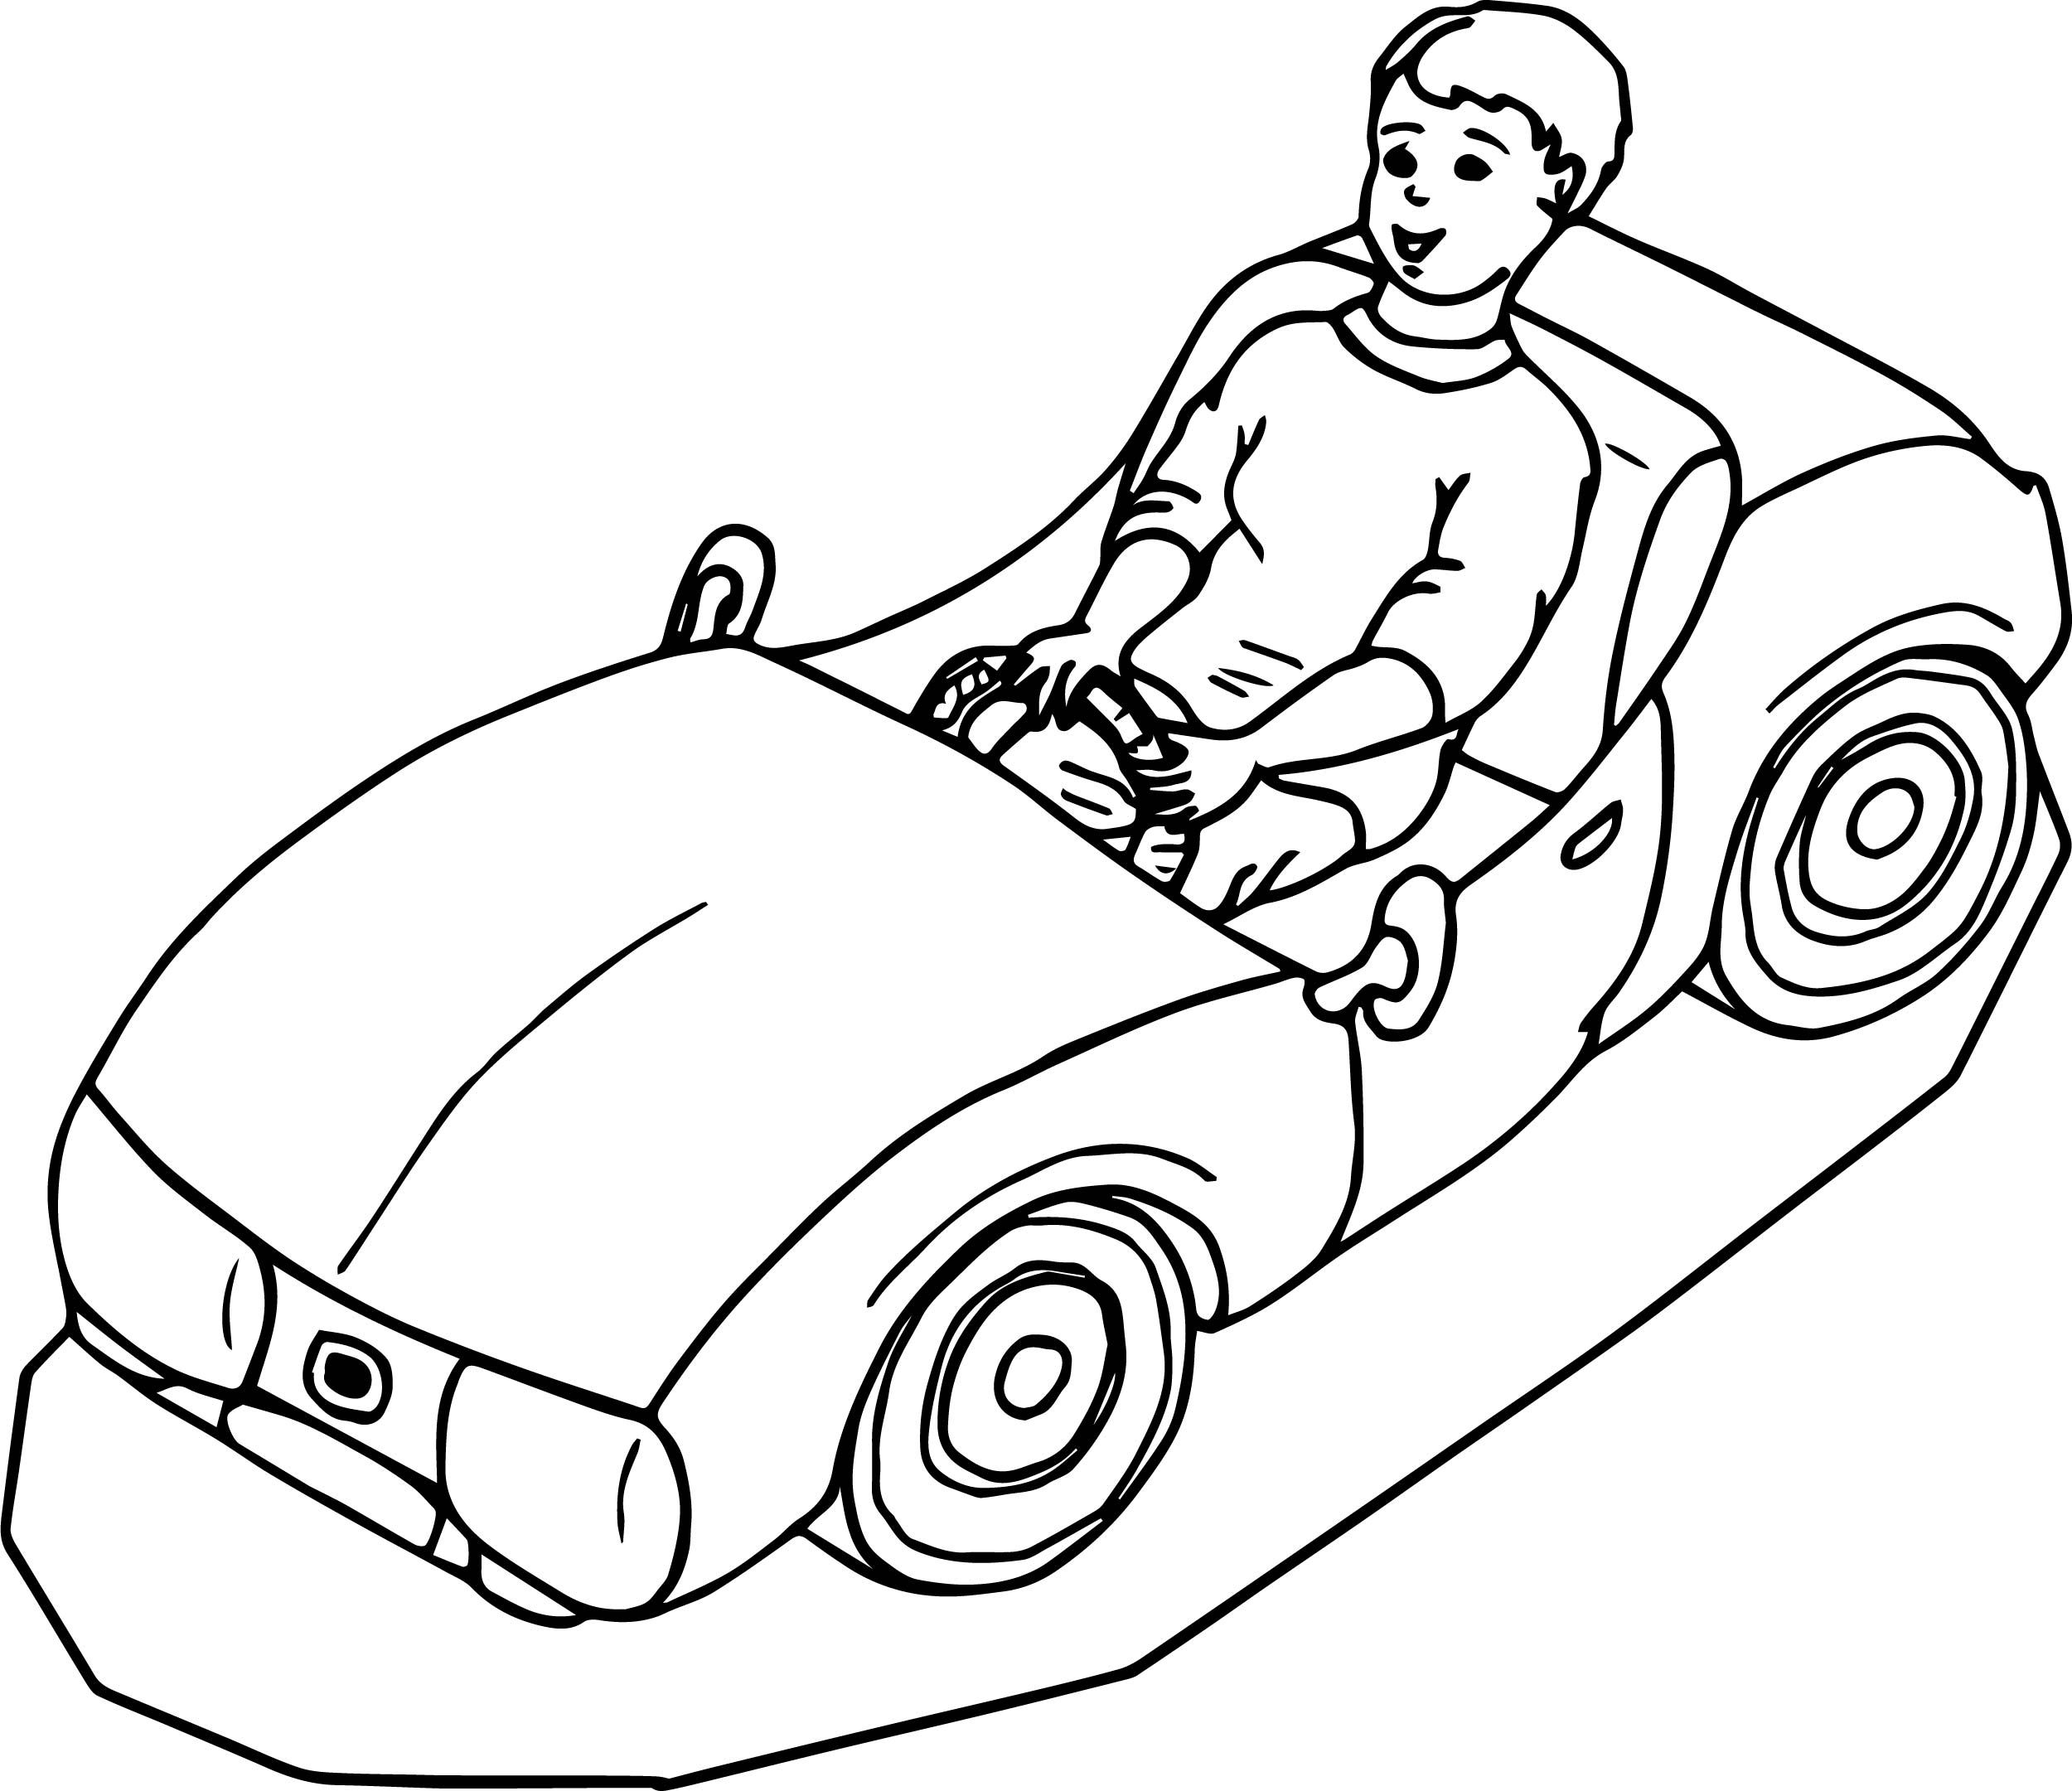 toy car coloring page toy car clip art black and white toy car colouring pages car page coloring toy